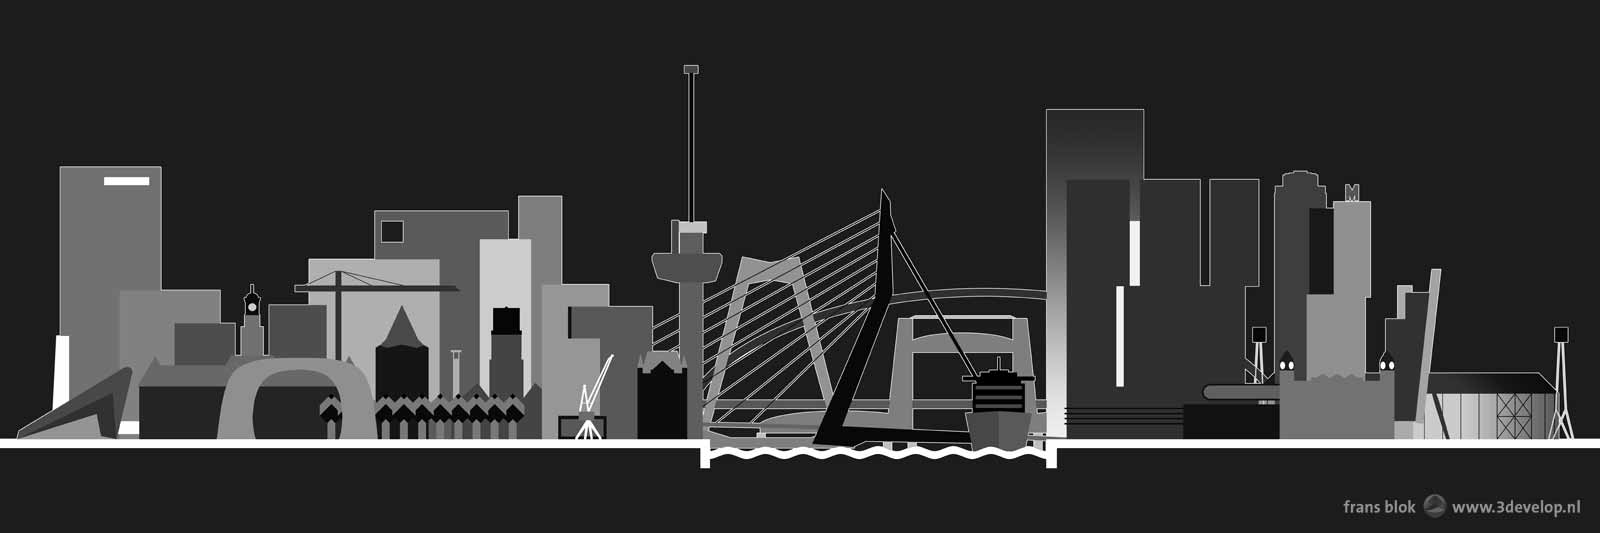 Graphic representation of the Rotterdam skyline, featuring Markthal, Euromast, Erasmus bridge and numerous other buildings bridges and other landmarks